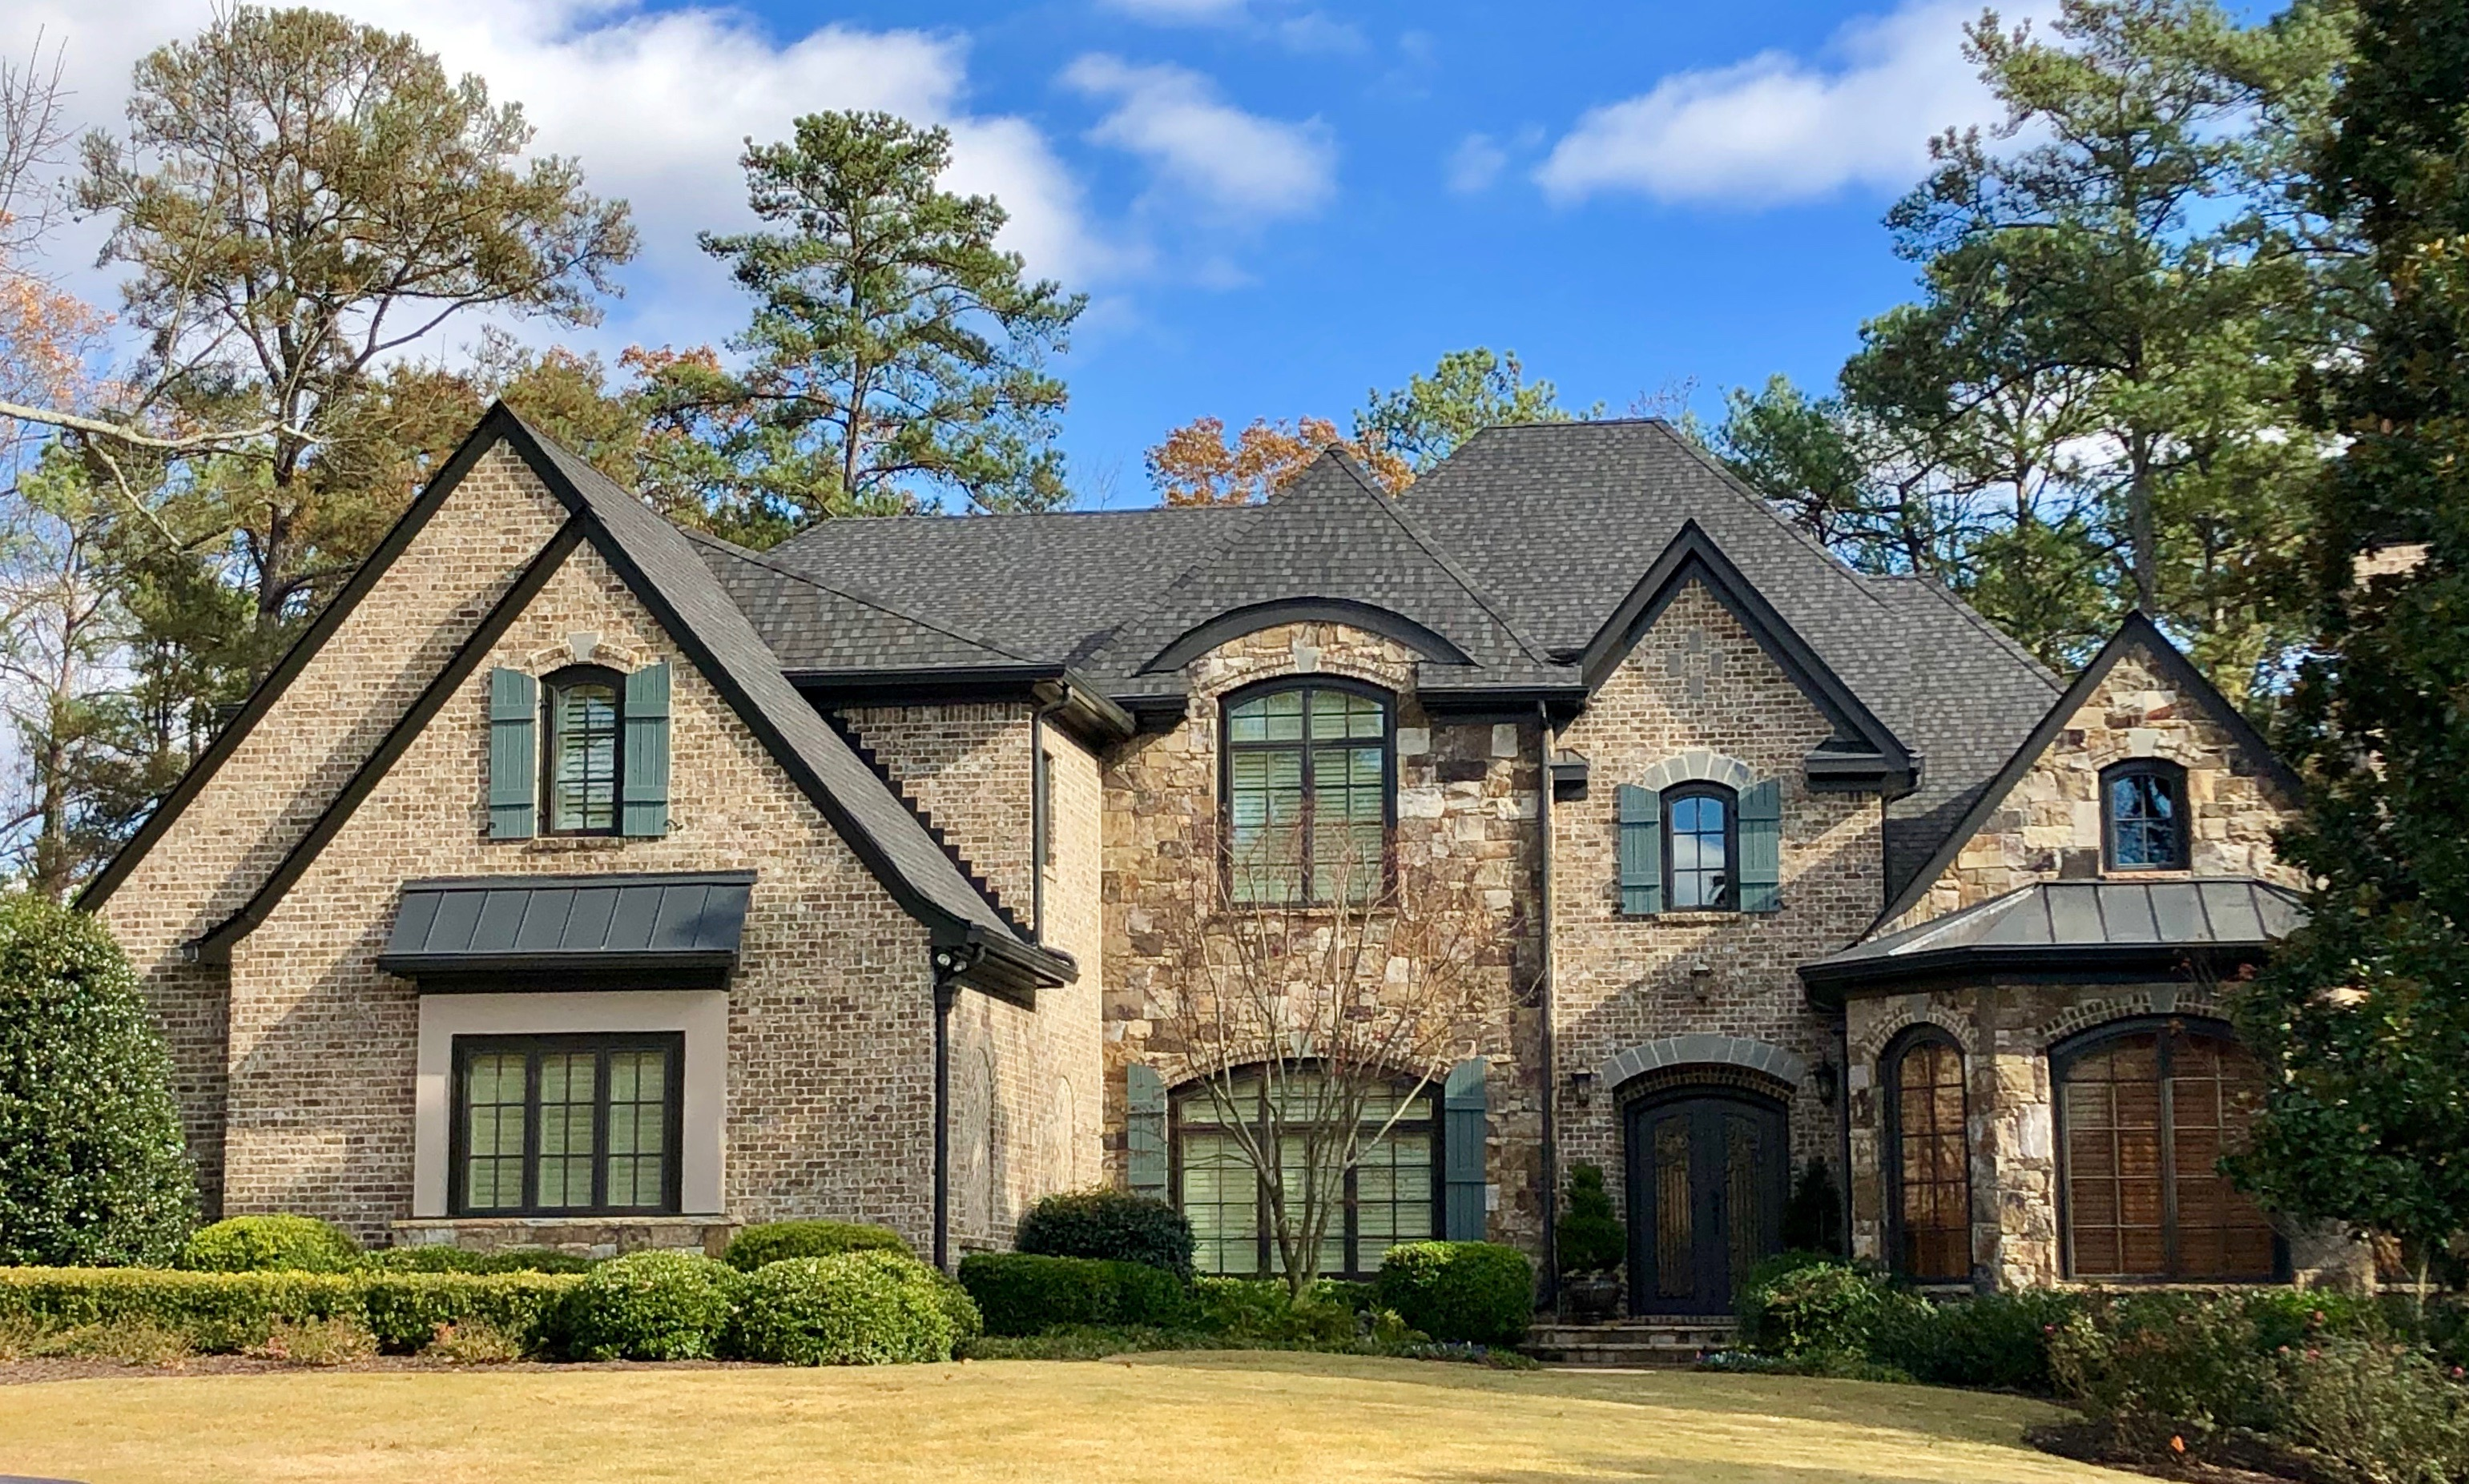 American Southern Roofing and Co. reviews | Roofing at 7380 Spout Springs Rd - Flowery Branch GA